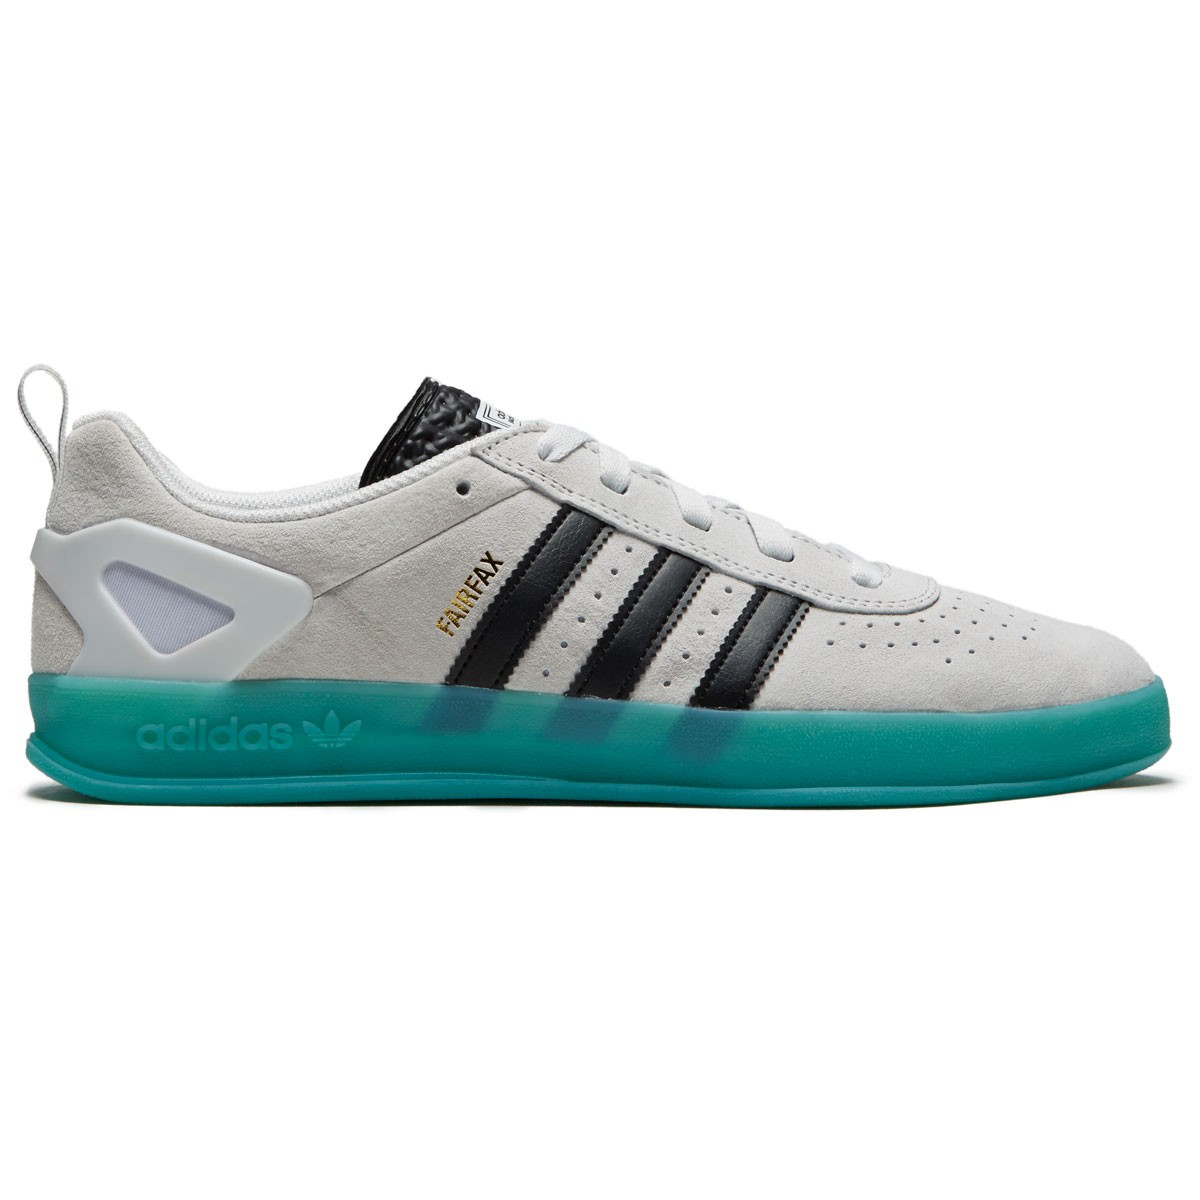 890cea8a4f6c Adidas X Palace Pro Benny Shoes - White Black Bright Cyan - 10.0